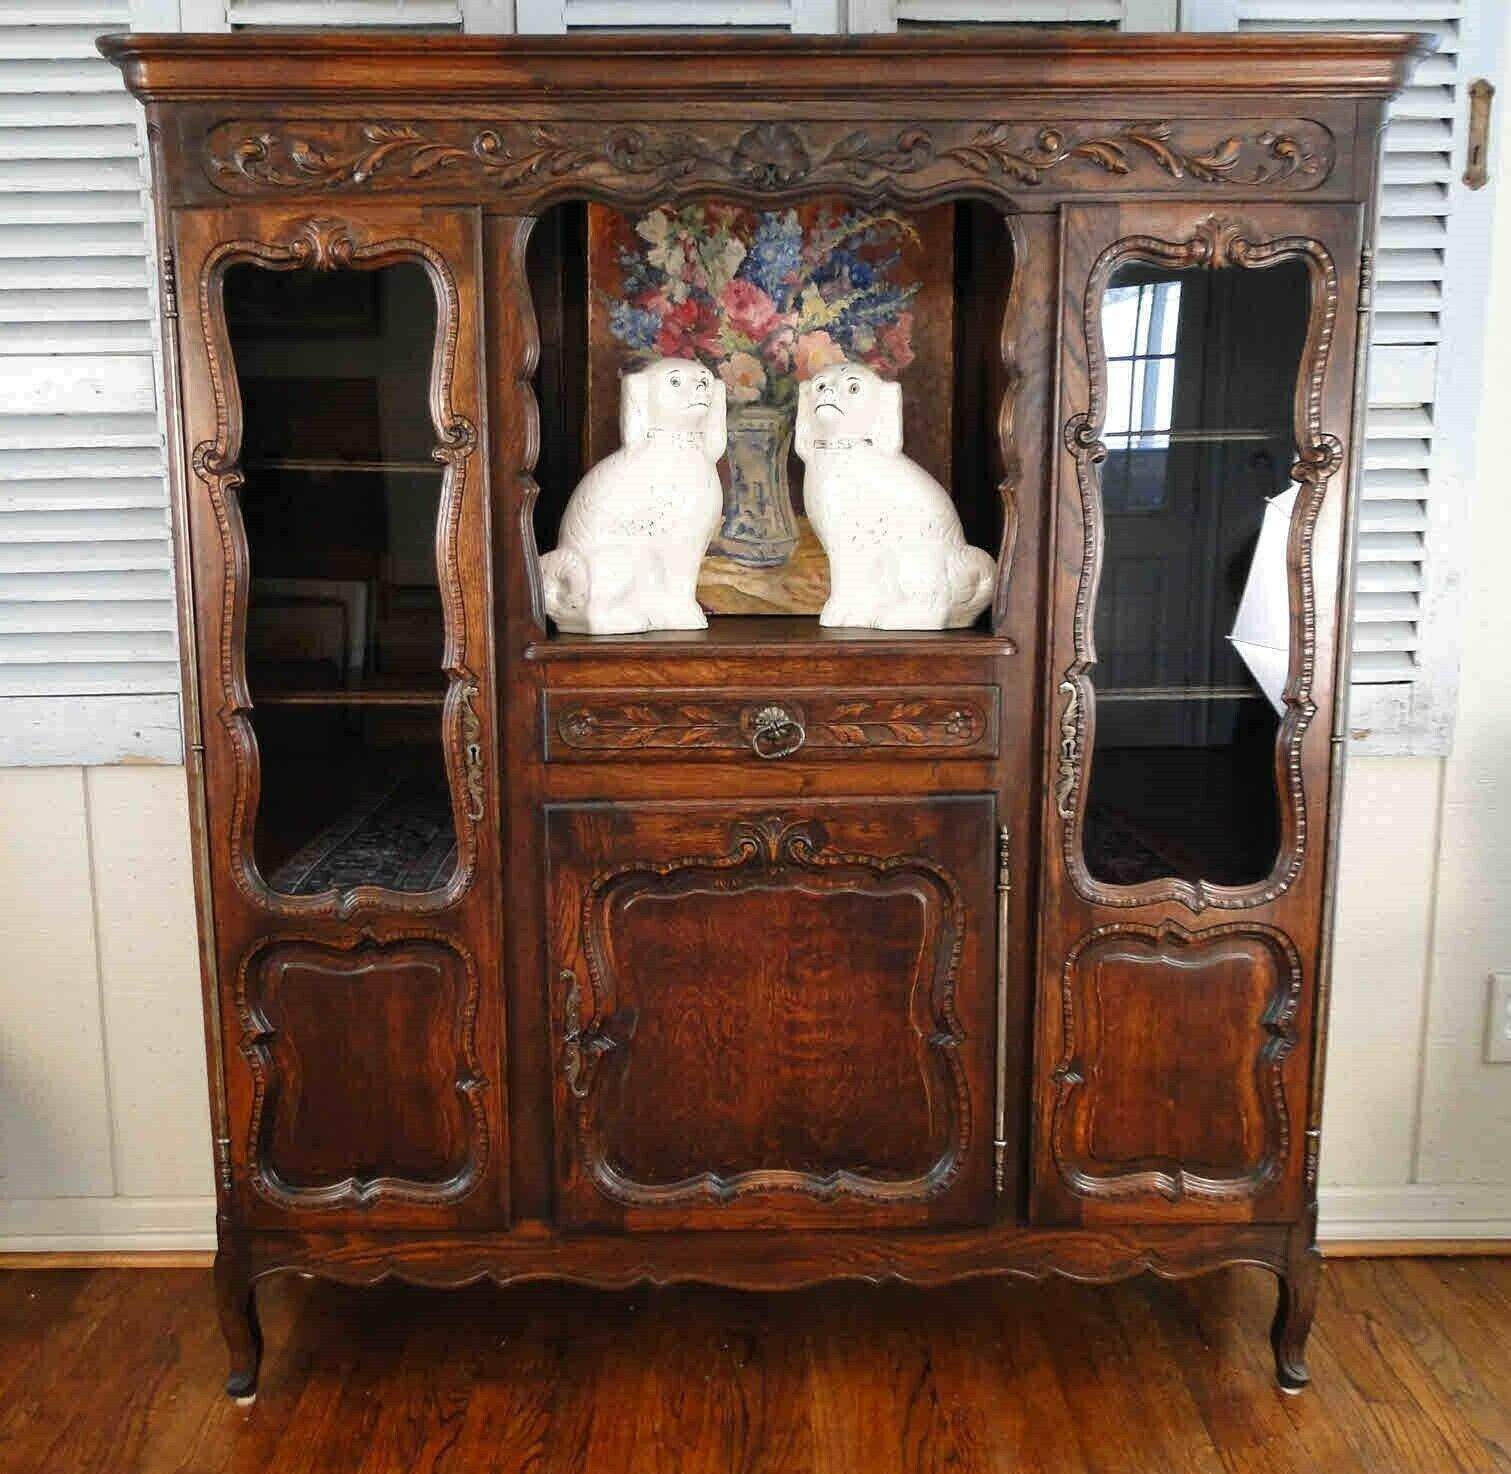 Stunning Antique French Hutch Bookcase Shell Carving Oak Shelf Scalloped